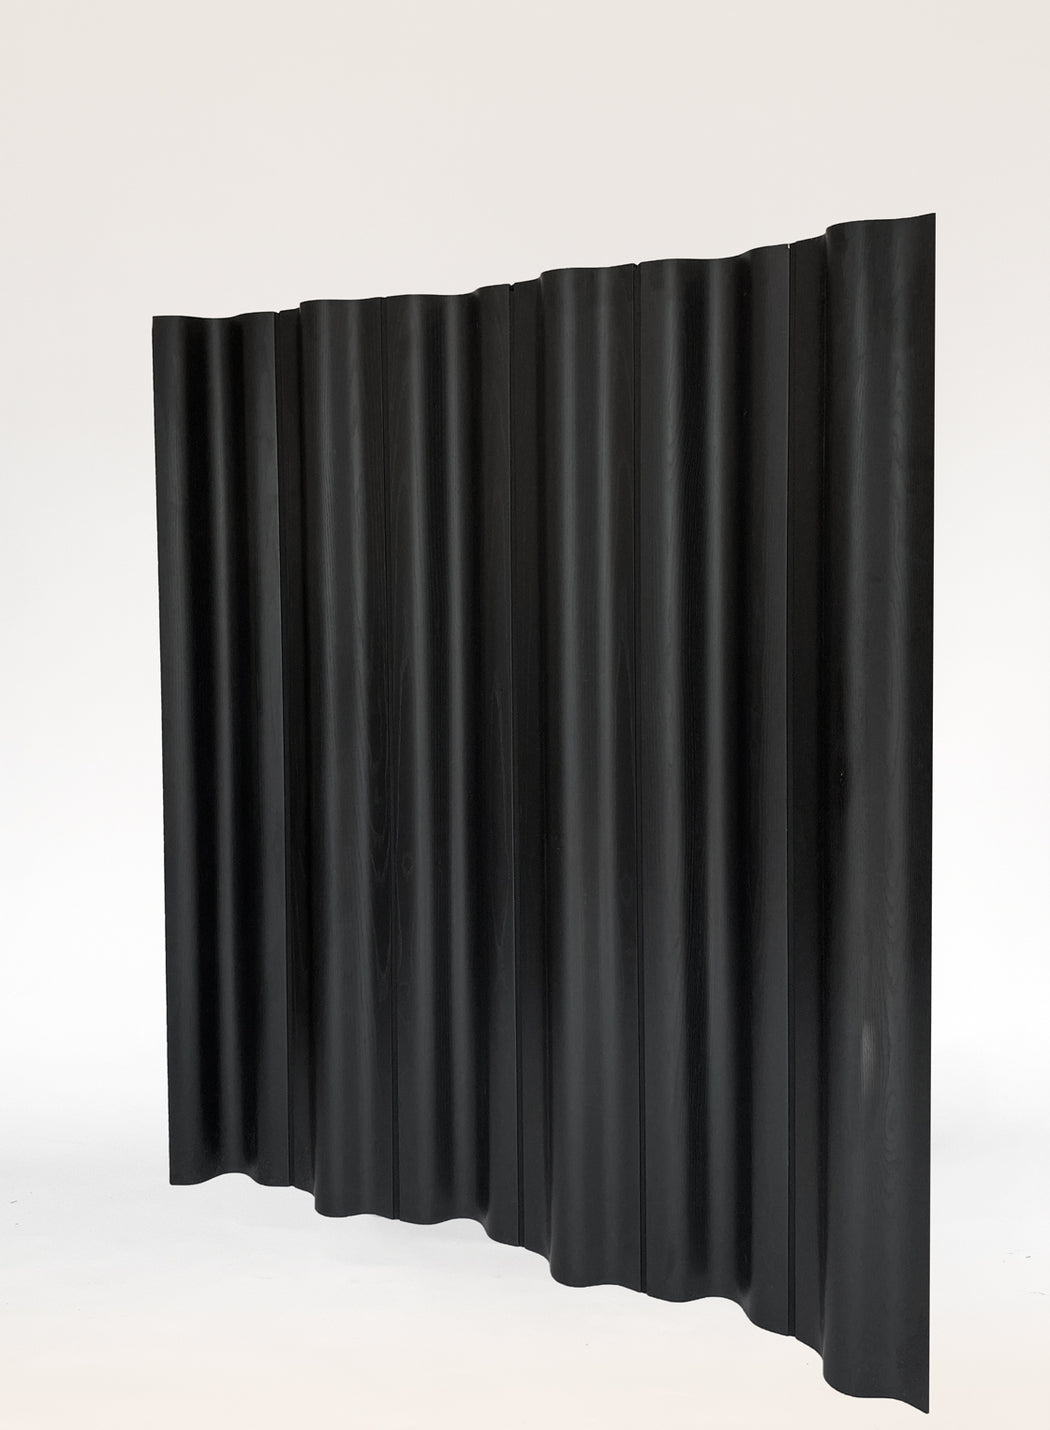 Eames Molded Plywood Folding Screen, Ebony